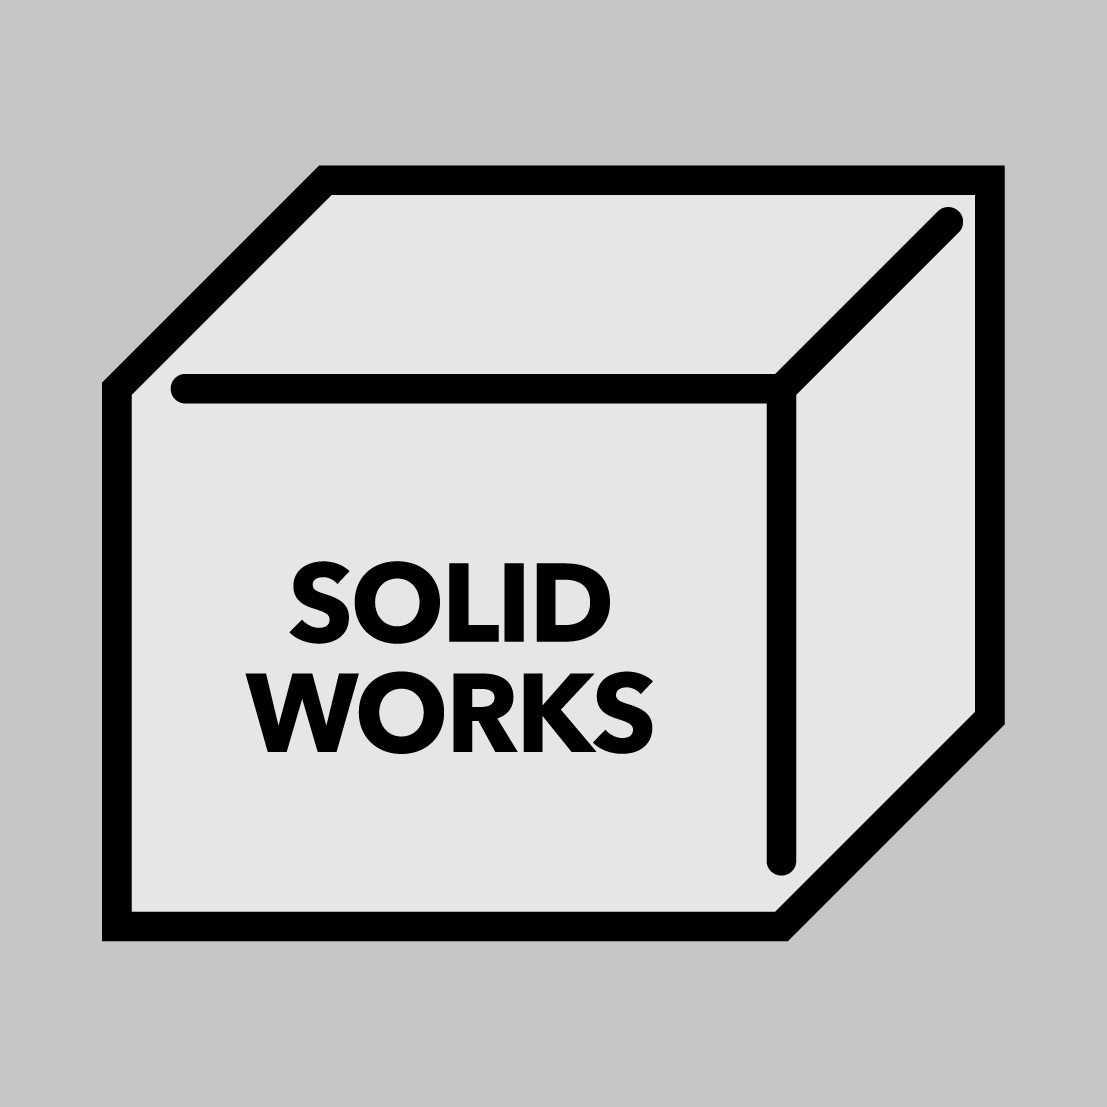 solidworks-icon-02.png